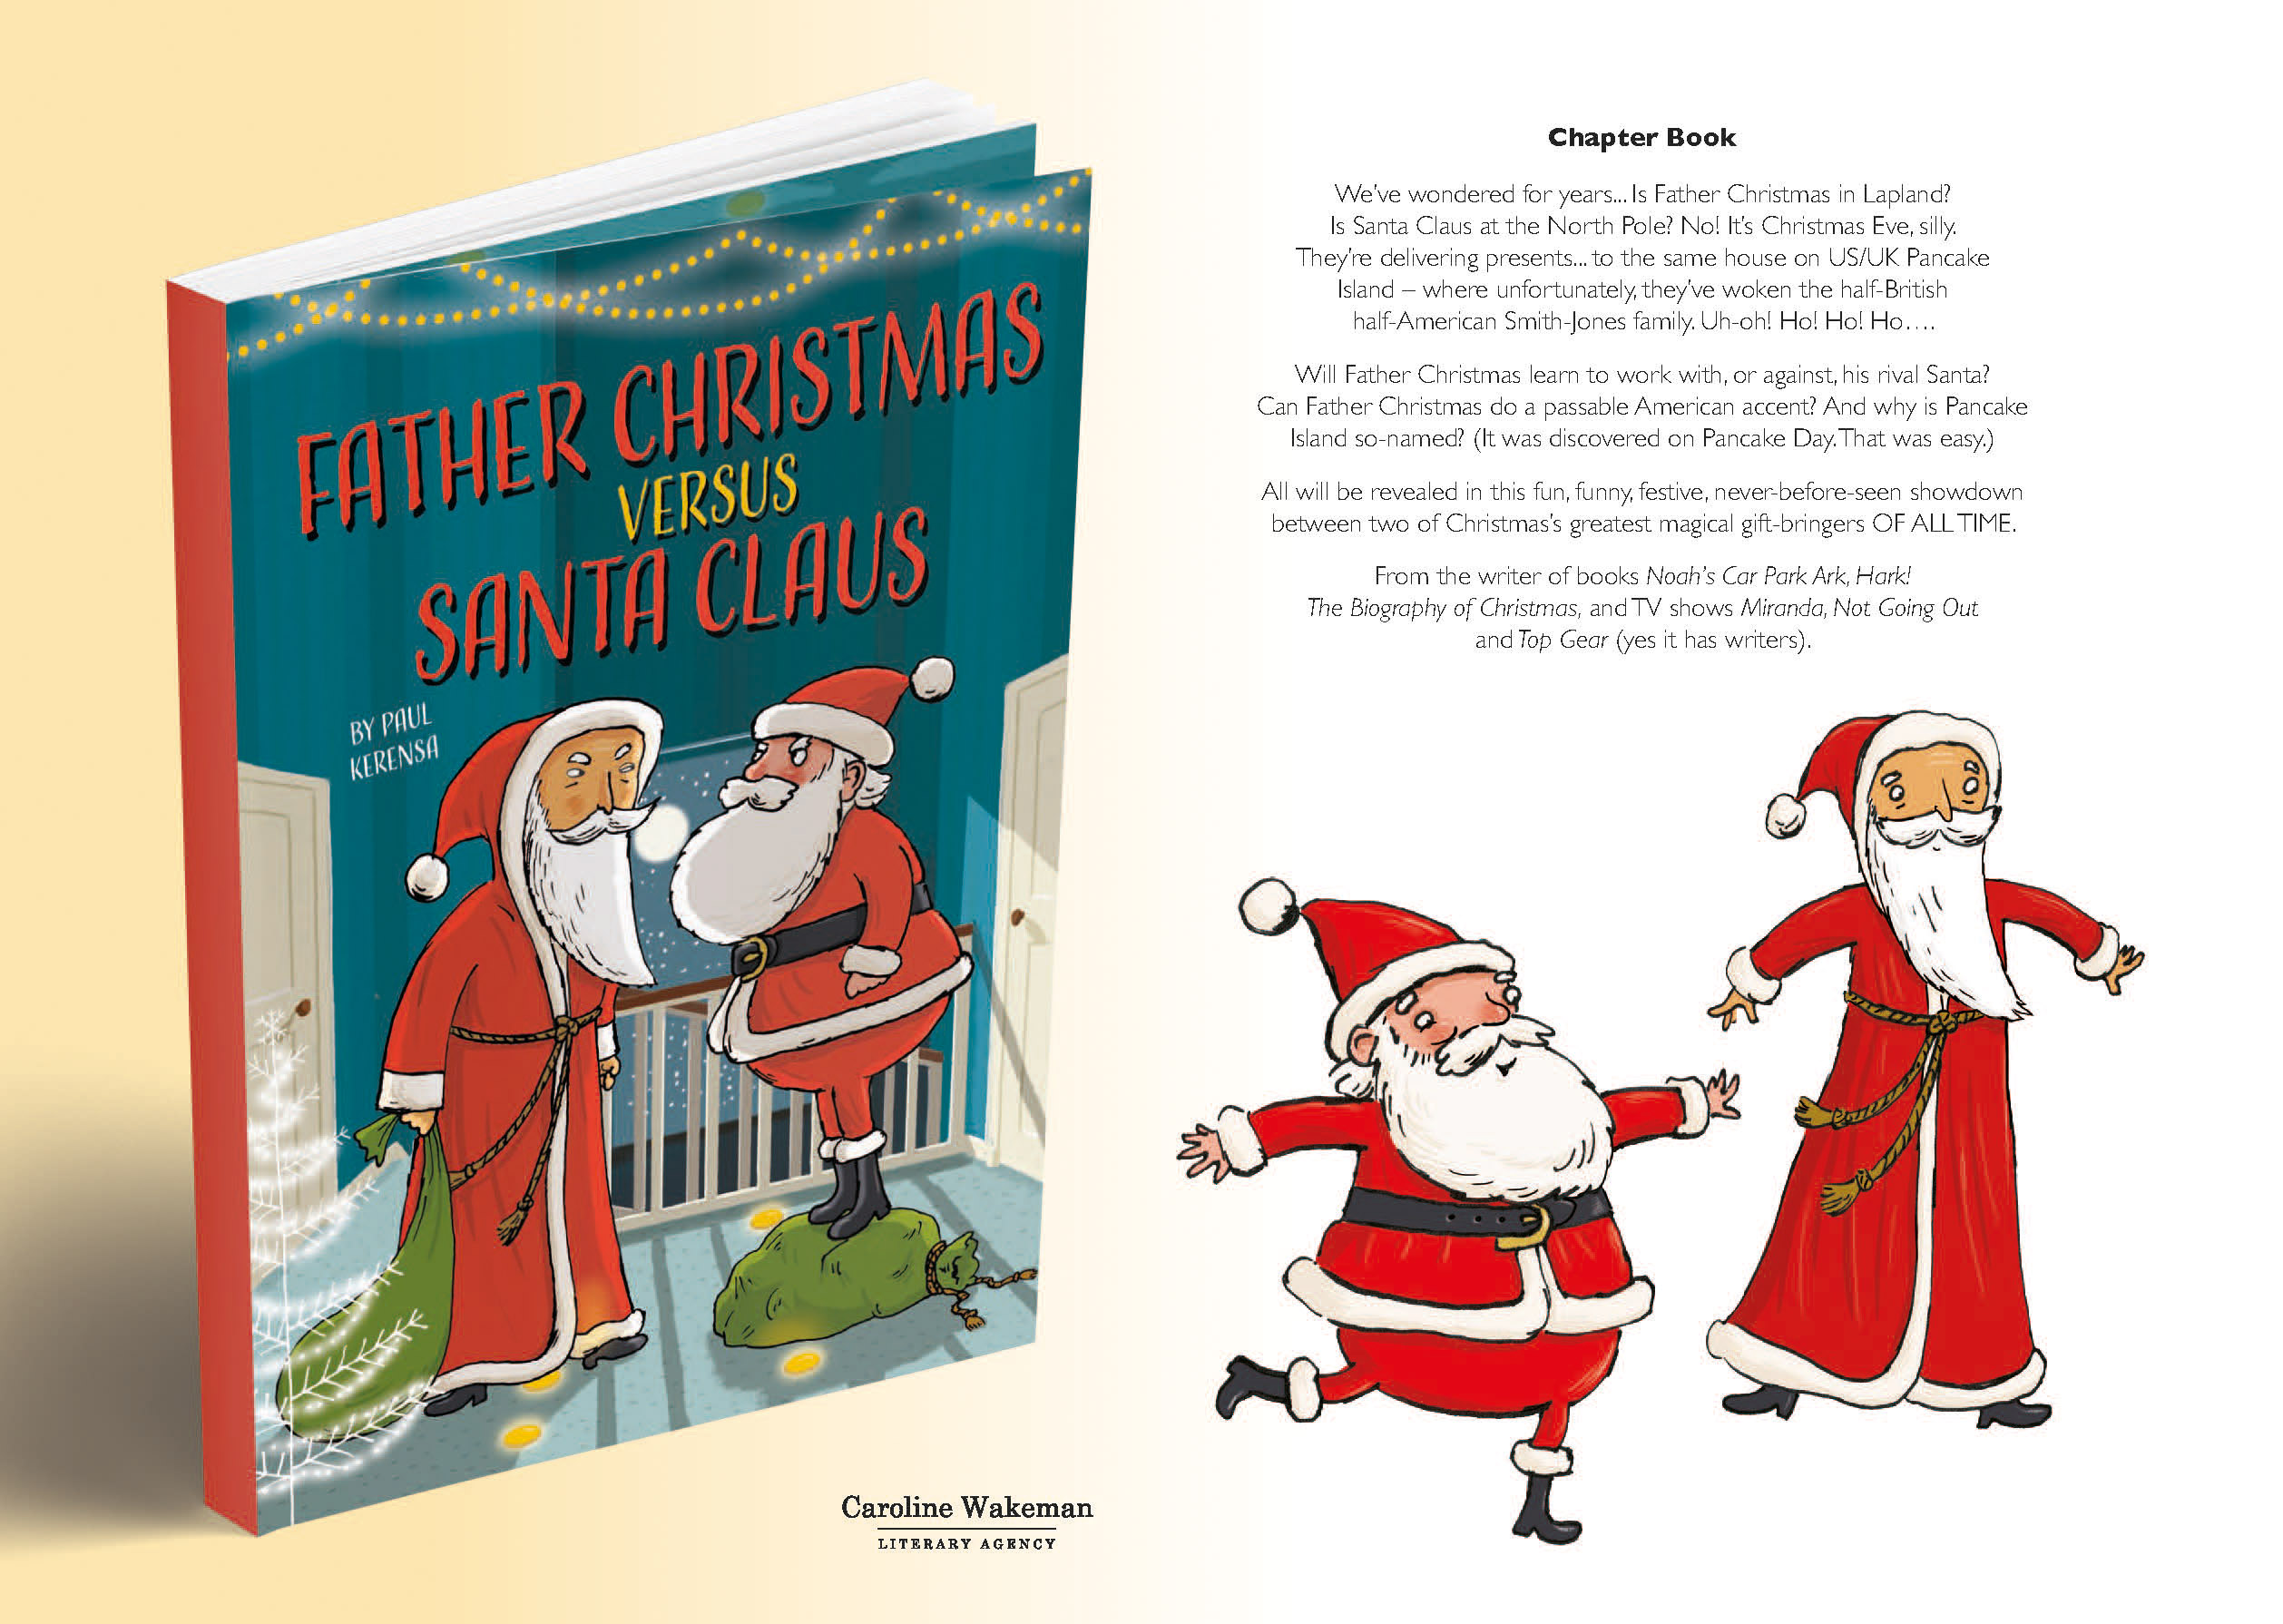 Father Christmas Versus Santa Claus – Chapter Book Header Image